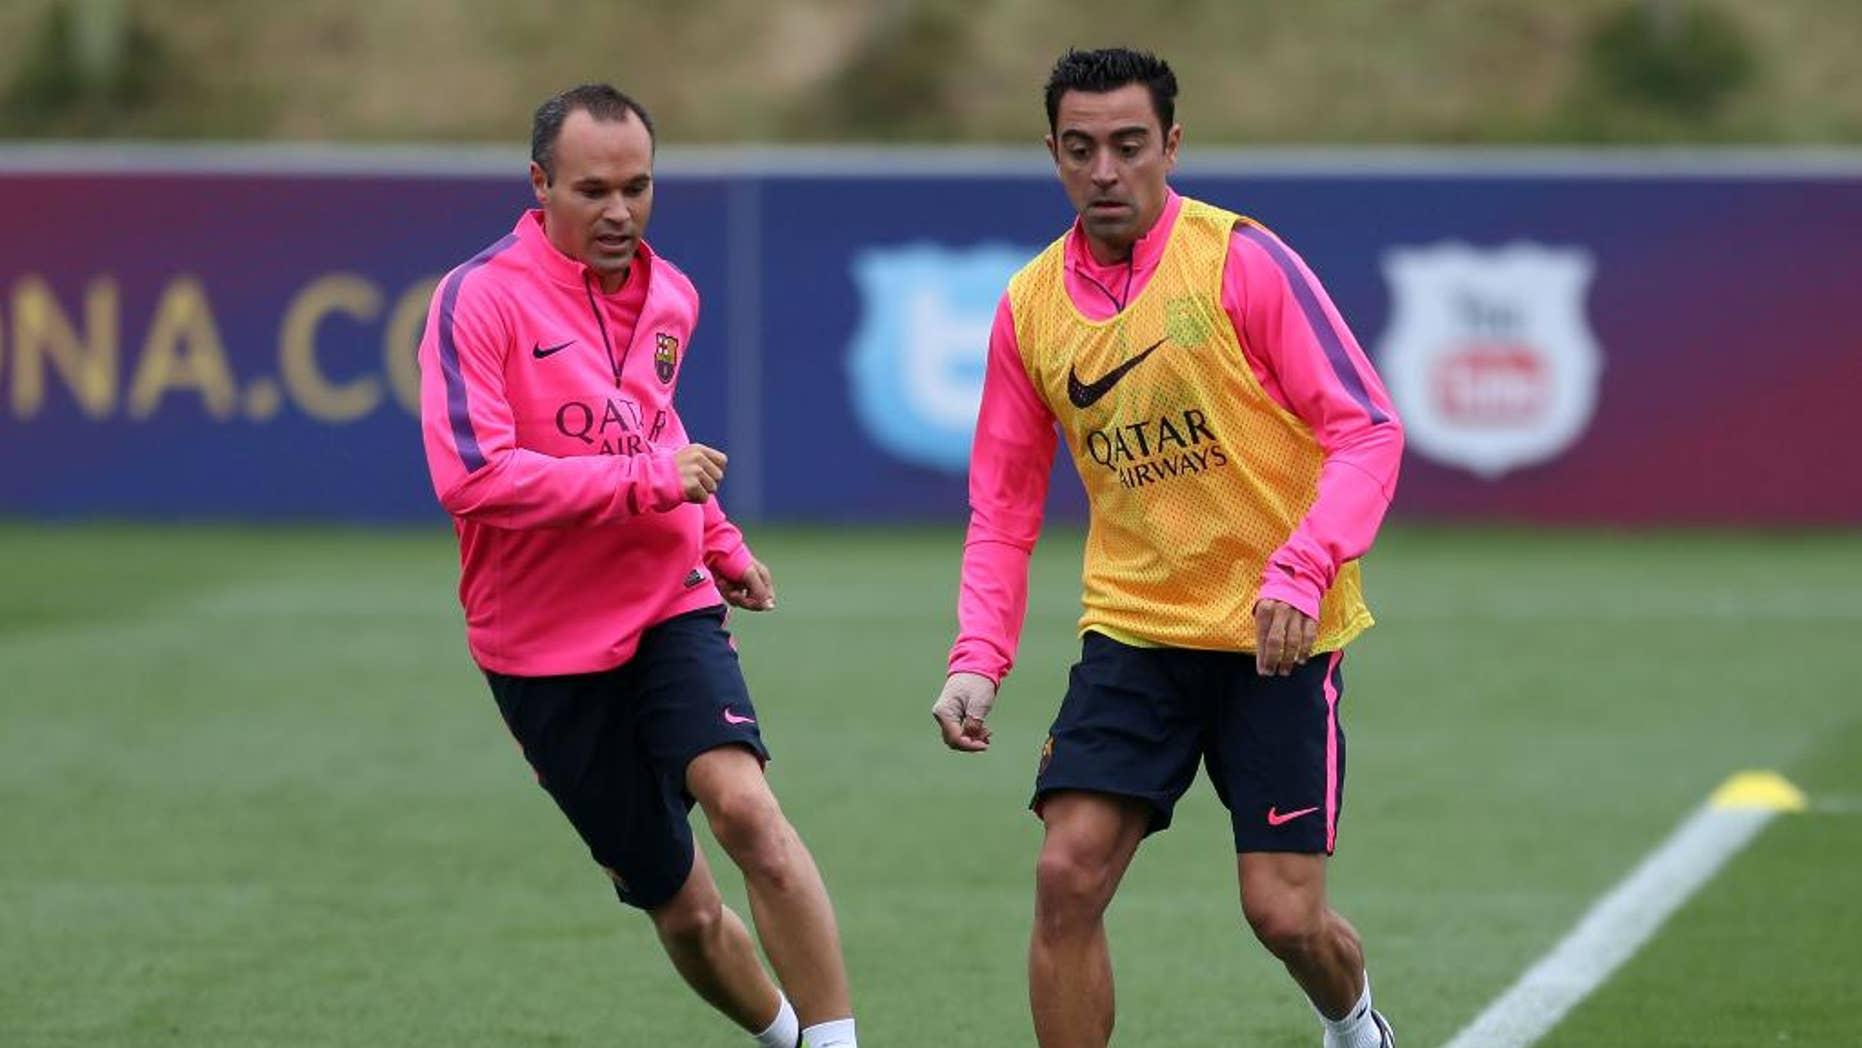 Barcelona's Xavi, right,  and Andres Iniesta, run, during a pre-season training session, at St George's Park, Burton-Upon-Trent,  England,  Friday Aug.  1, 2014. (AP Photo/PA, Simon Cooper) UNITED KINGDOM OUT